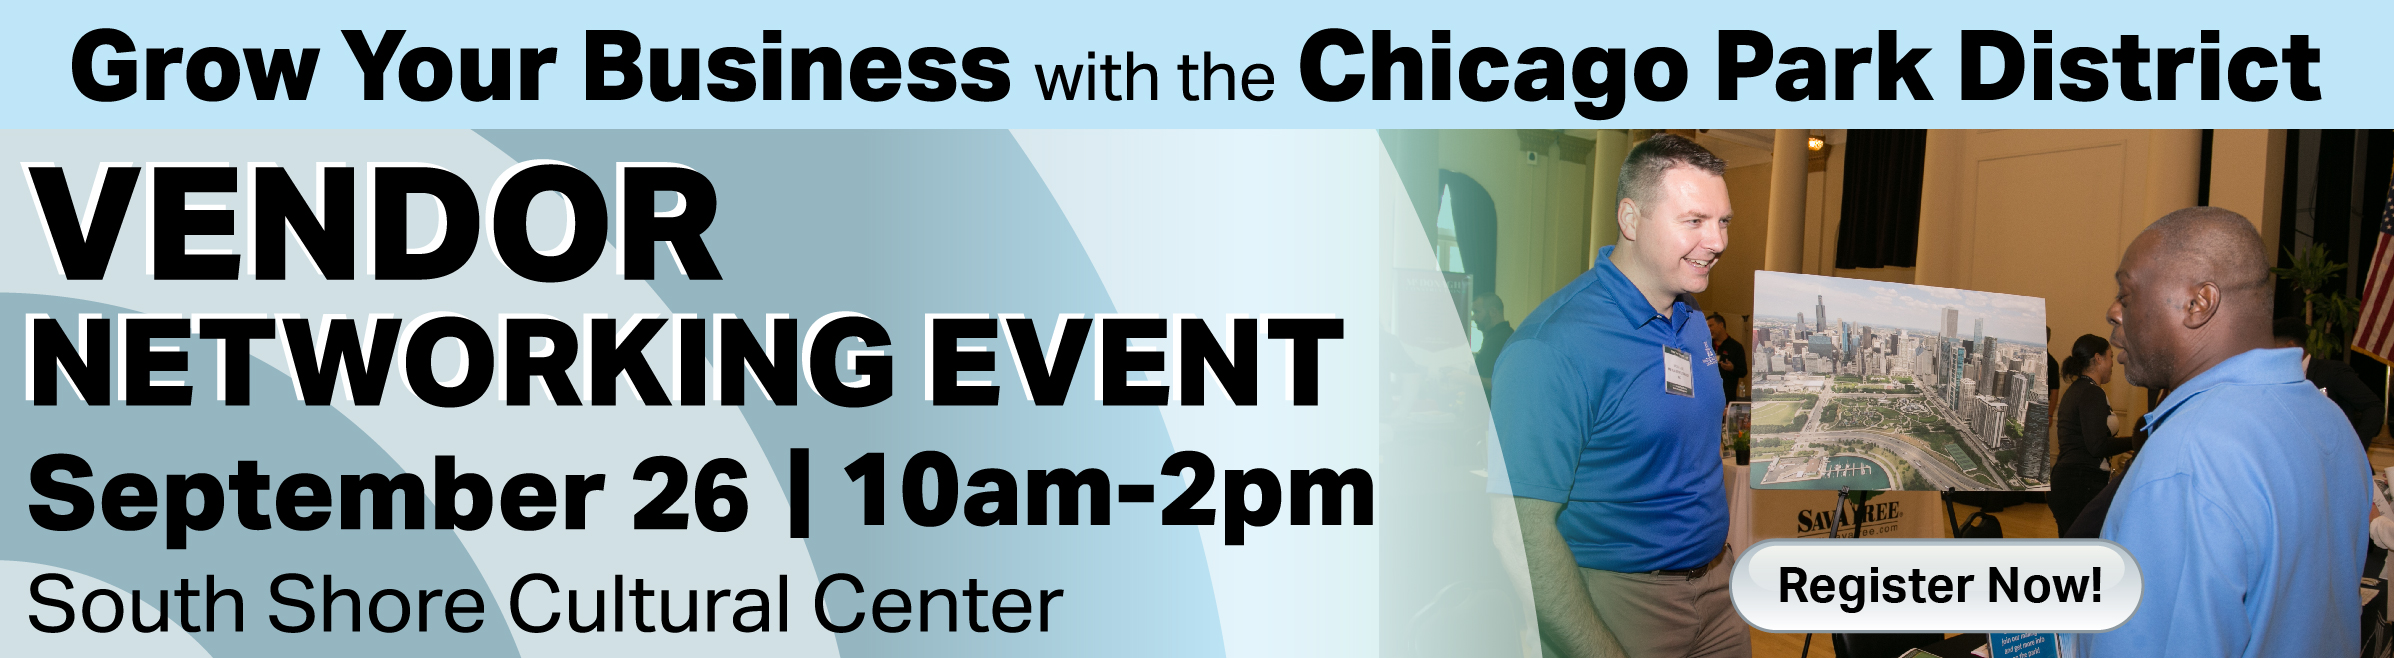 2019 Chicago Park District Vendor Networking Event